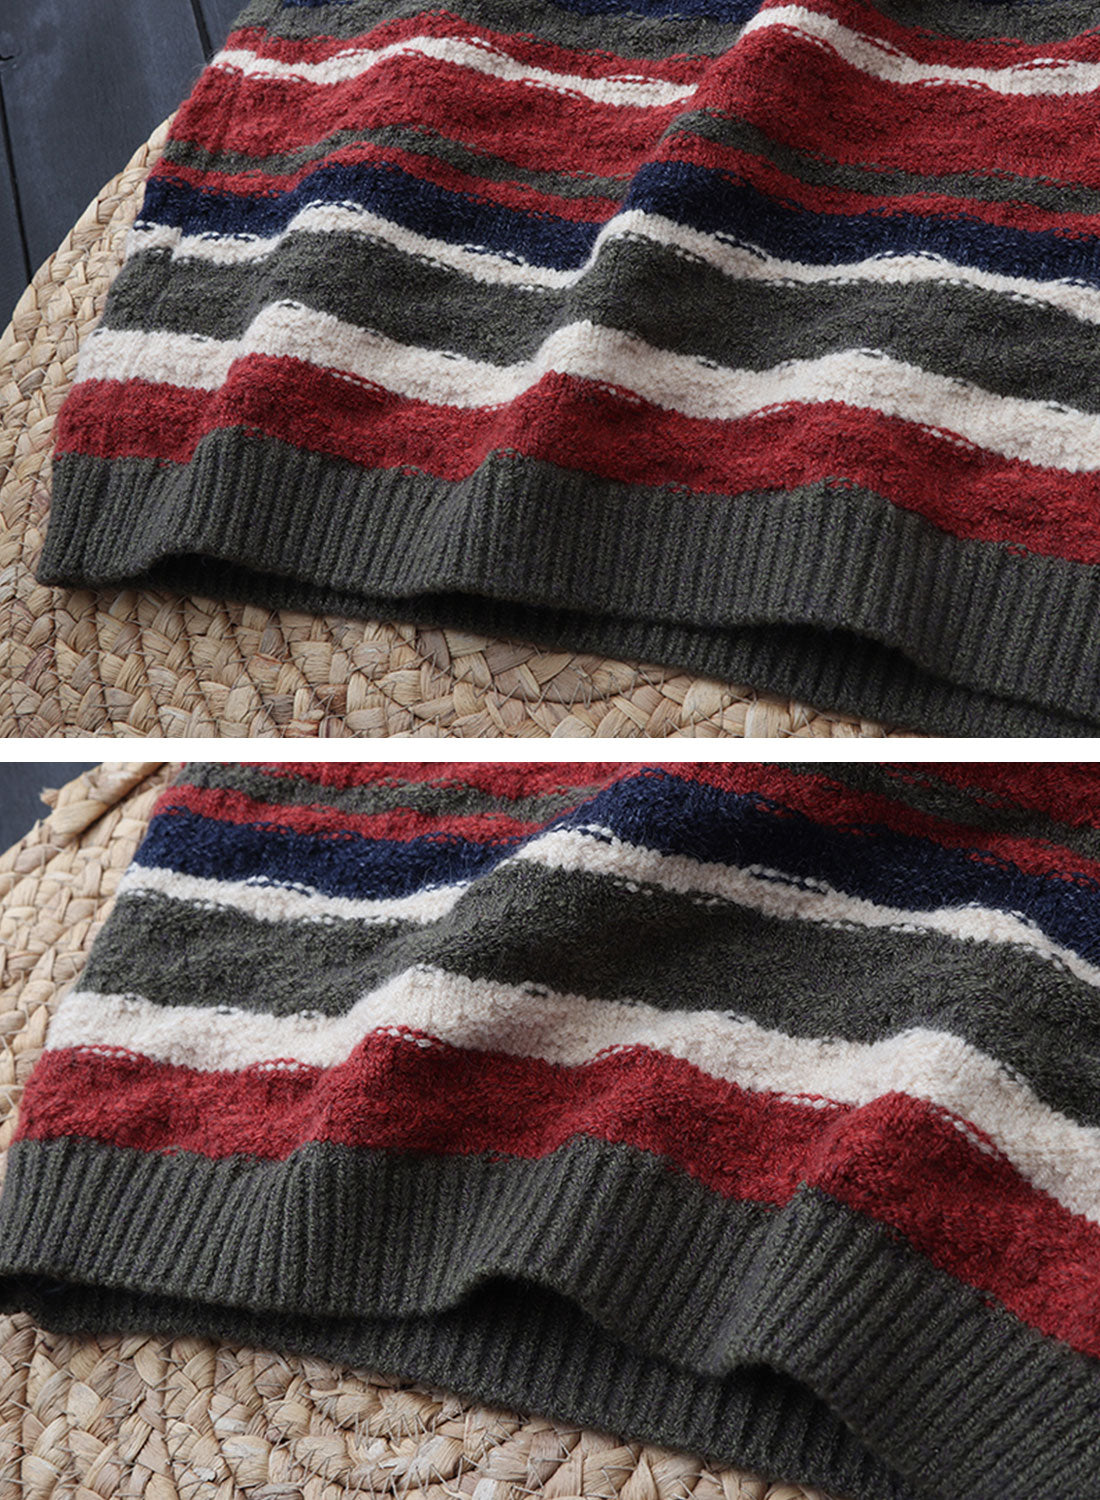 Color Block Striped Long Cardigan Sweater Details 3